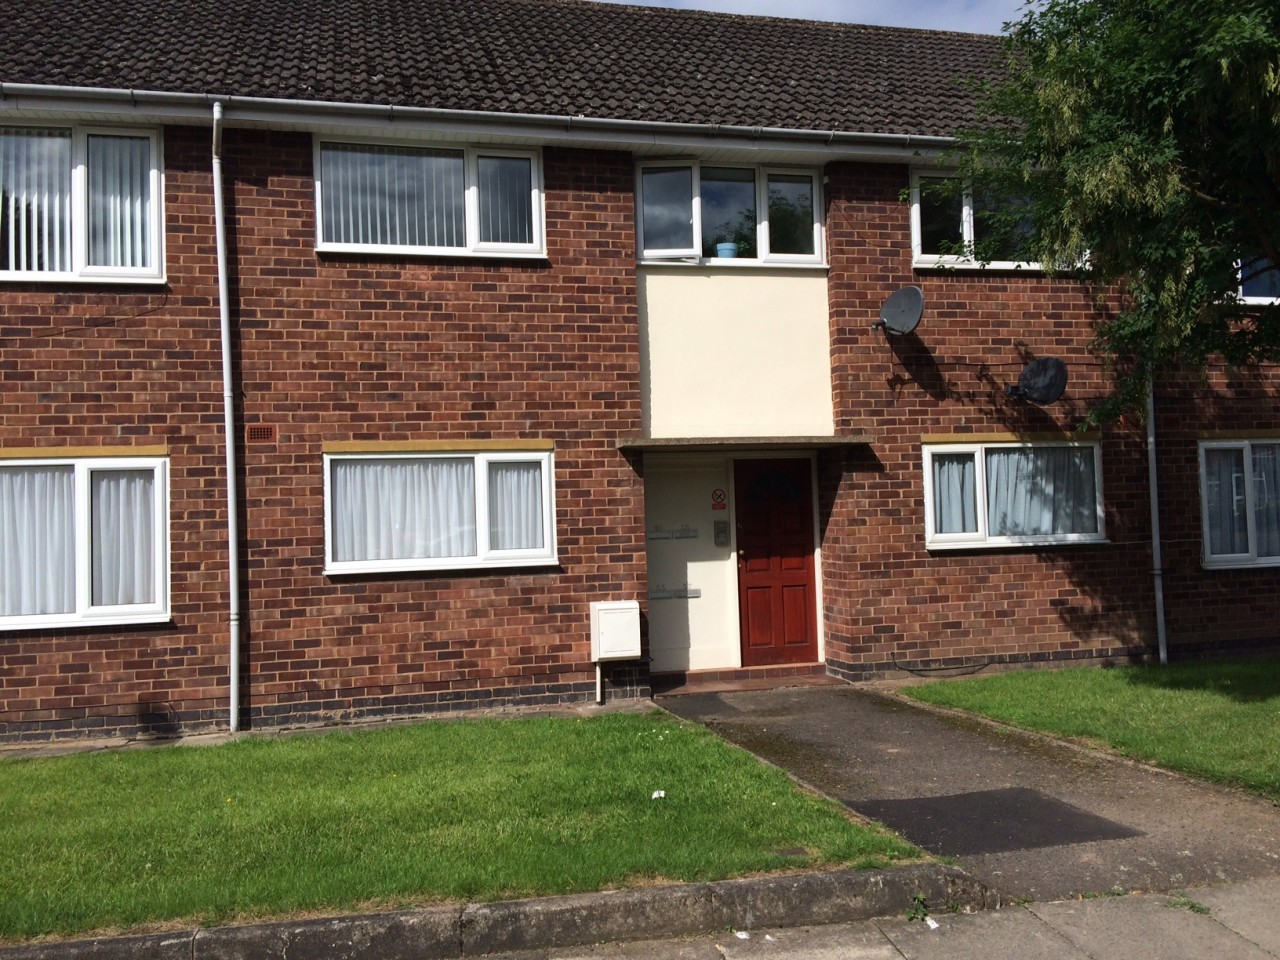 Spacious 2 Bedroom Flat To Rent In Coundon Coventry The Make Your Own Beautiful  HD Wallpapers, Images Over 1000+ [ralydesign.ml]